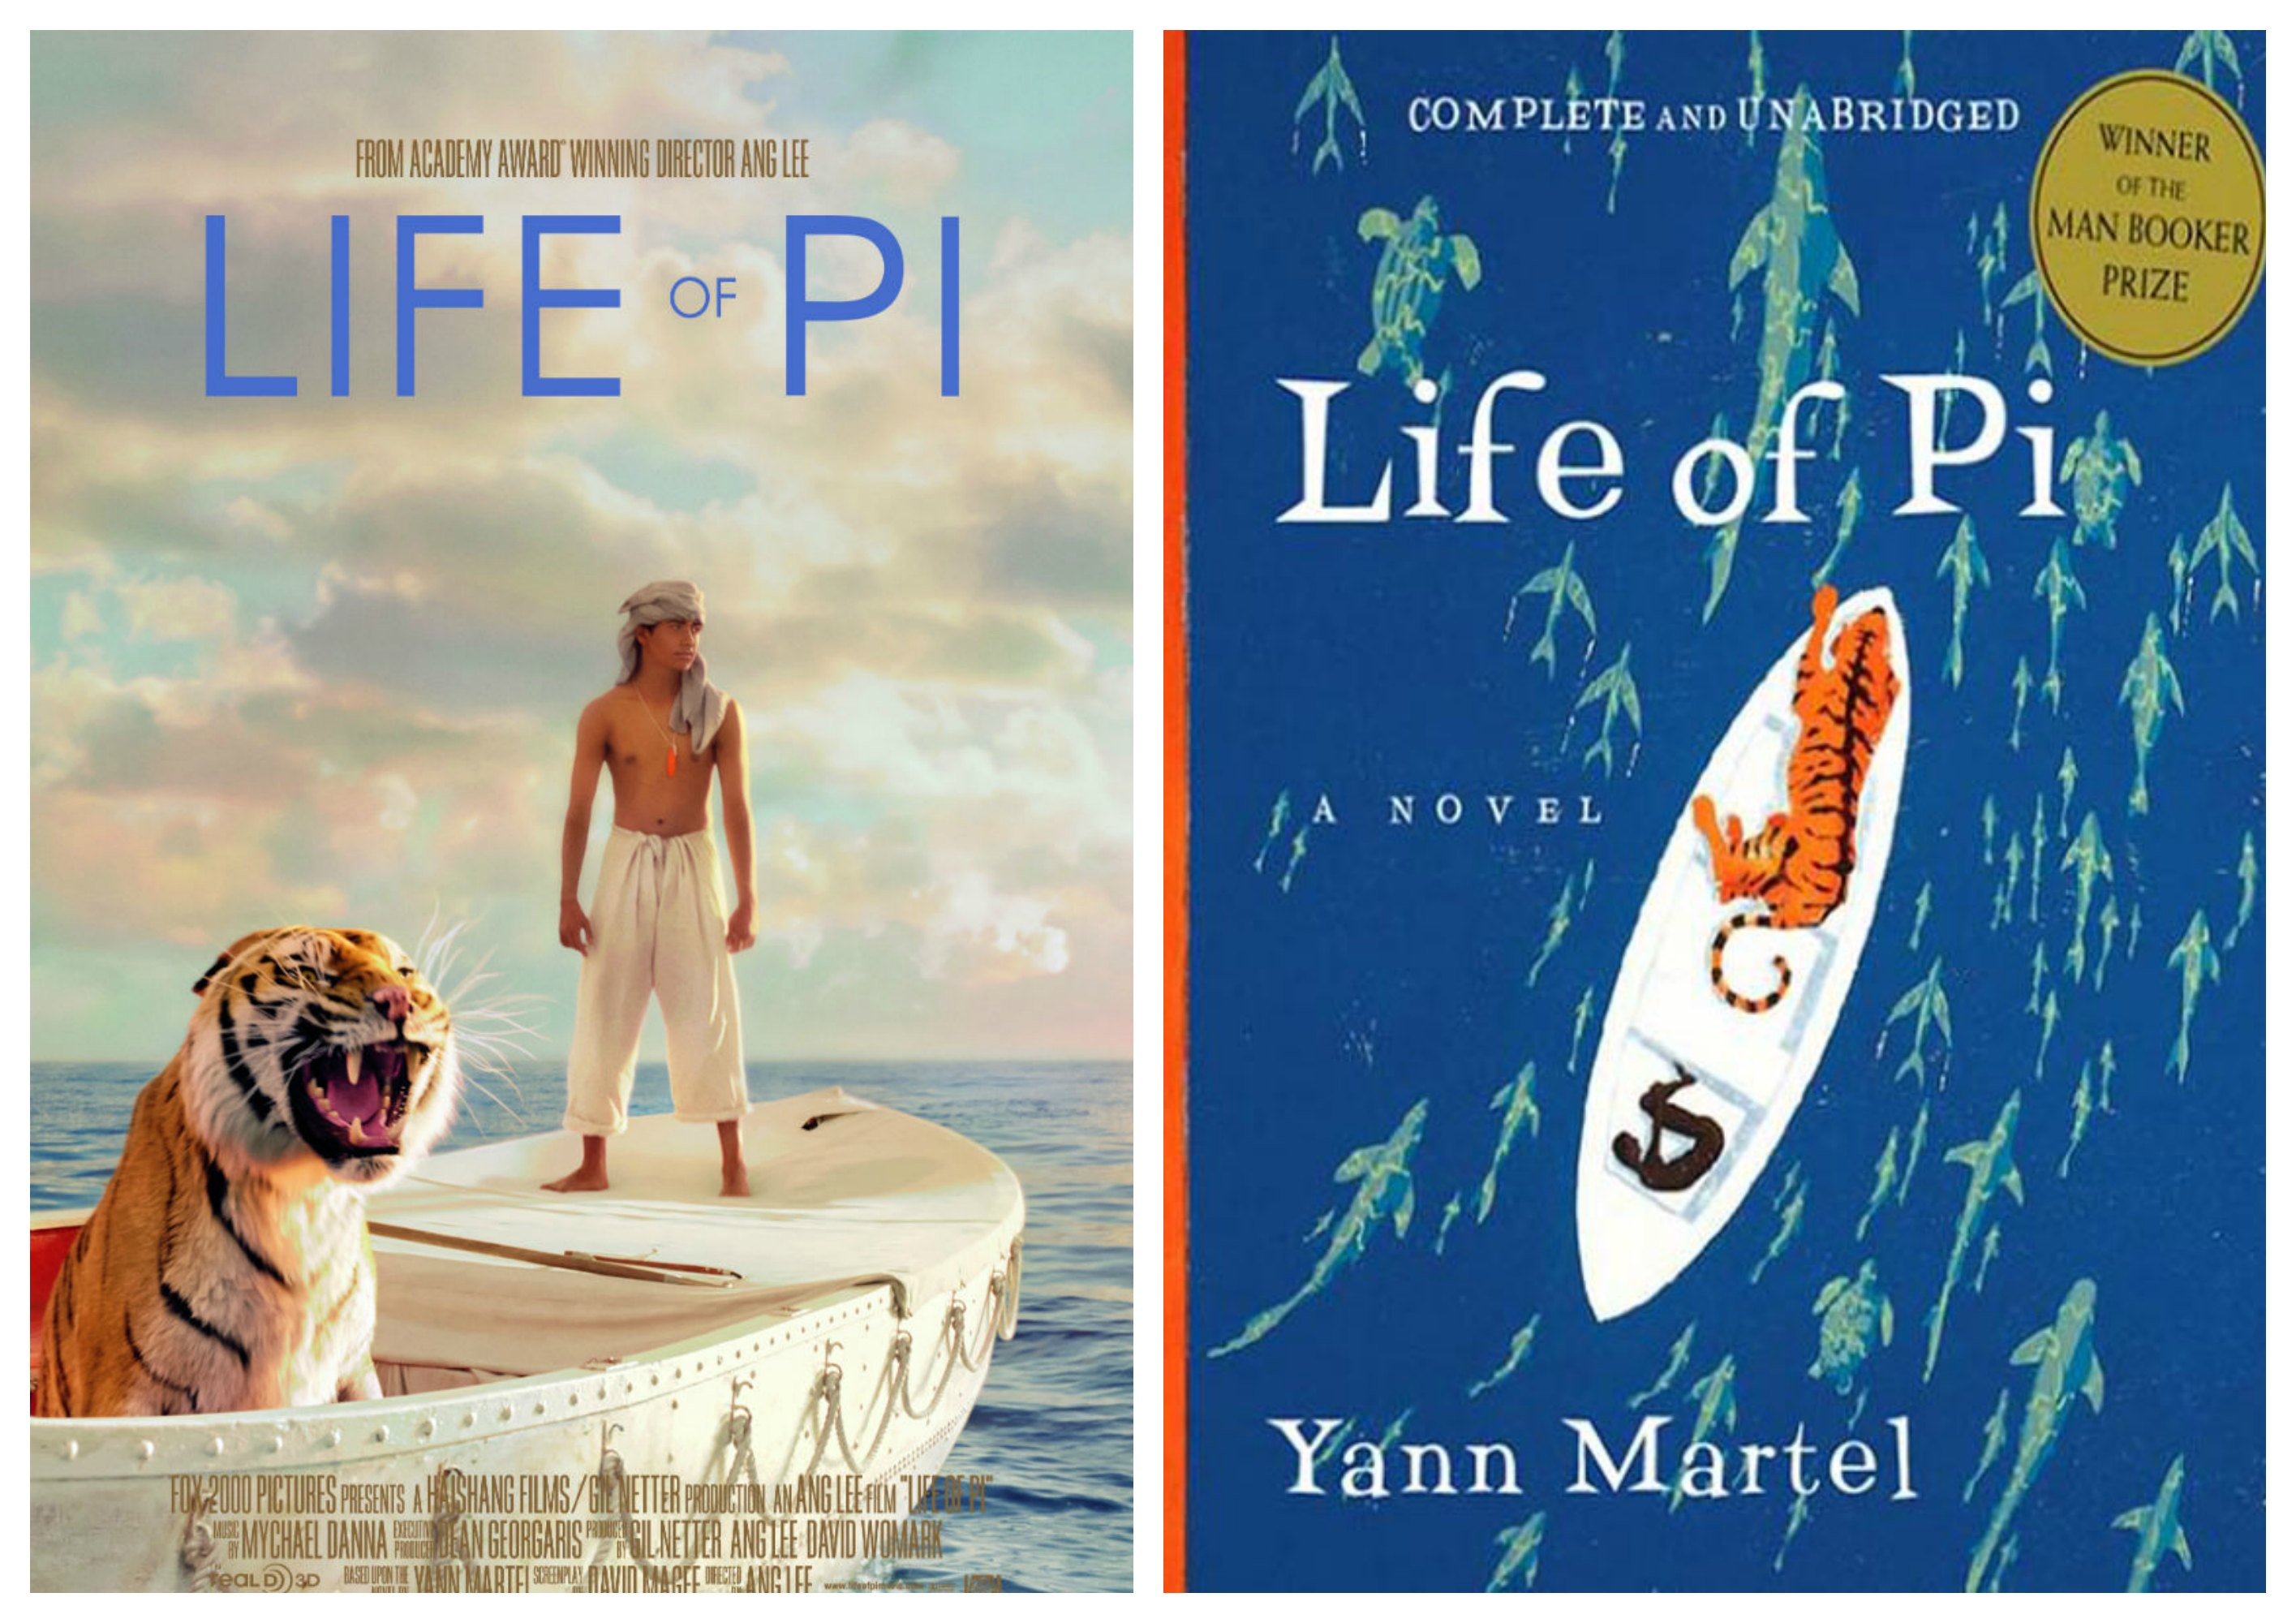 life of pi summary Life of pi is a novel by yann martel life of pi study guide contains a biography of author yann martel, literature essays, quiz questions, major themes, characters, and a full summary and.